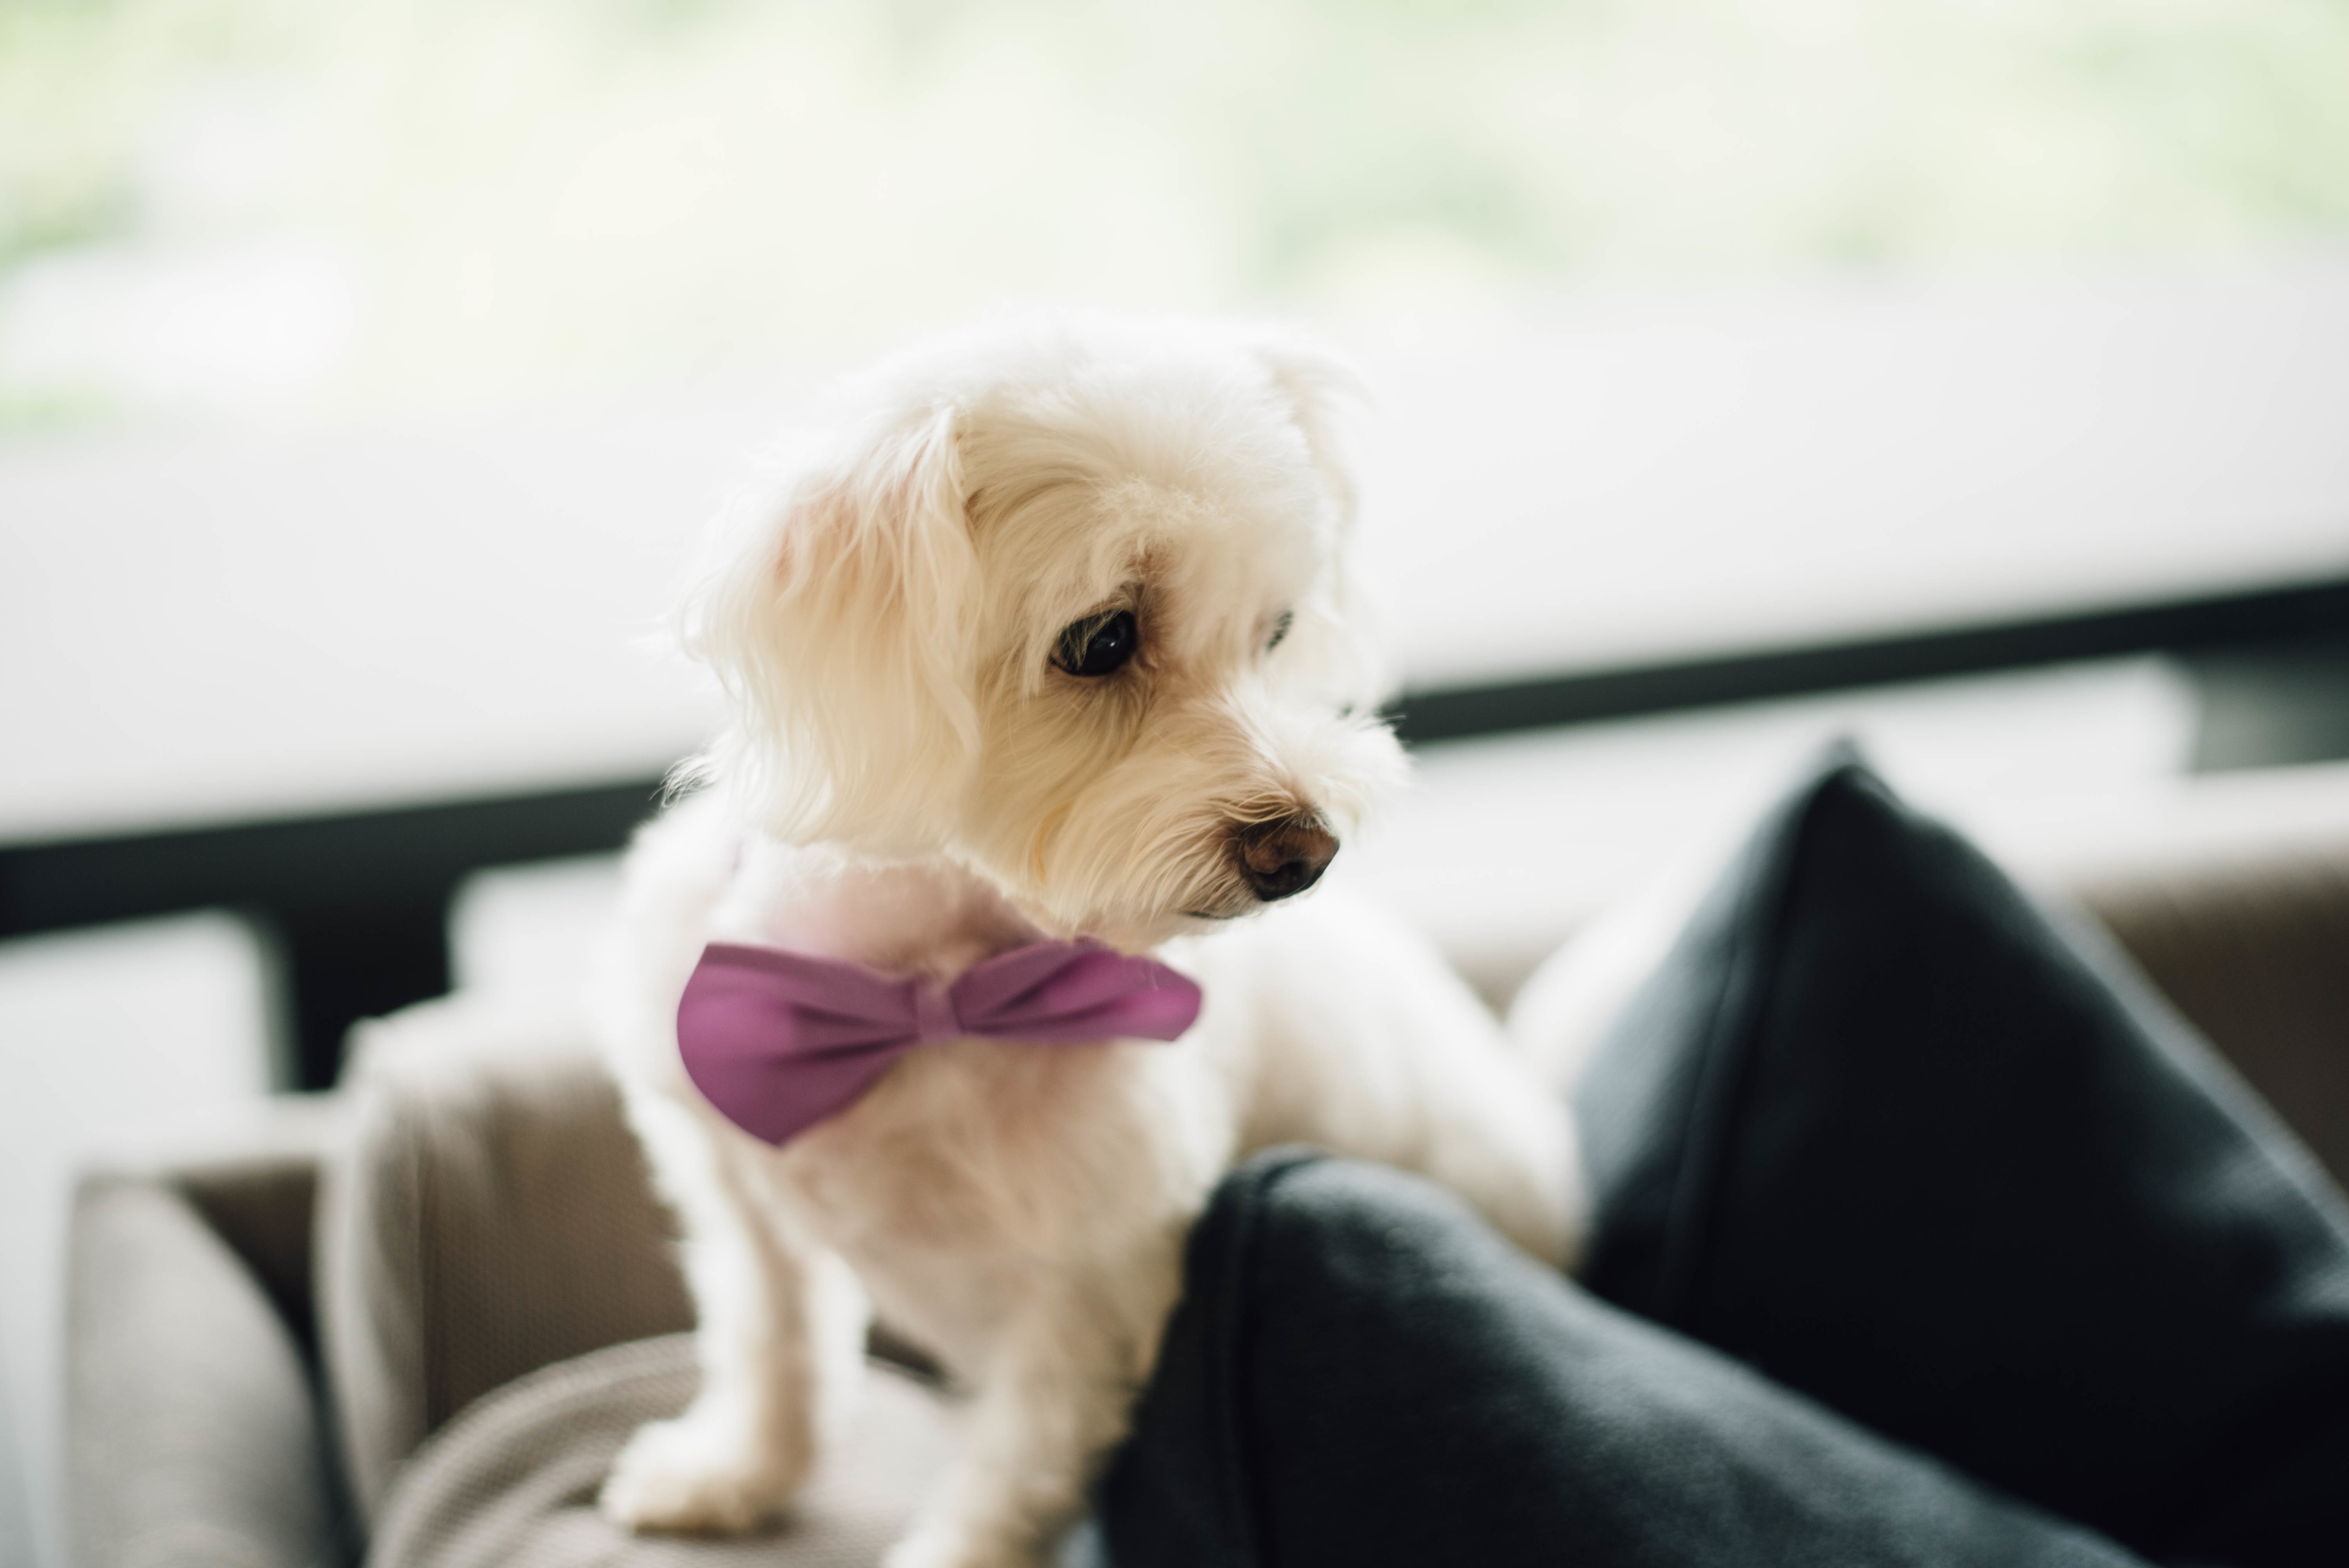 75785 download wallpaper Animals, Dog, Bow Tie, Butterfly Tie, Puppy screensavers and pictures for free